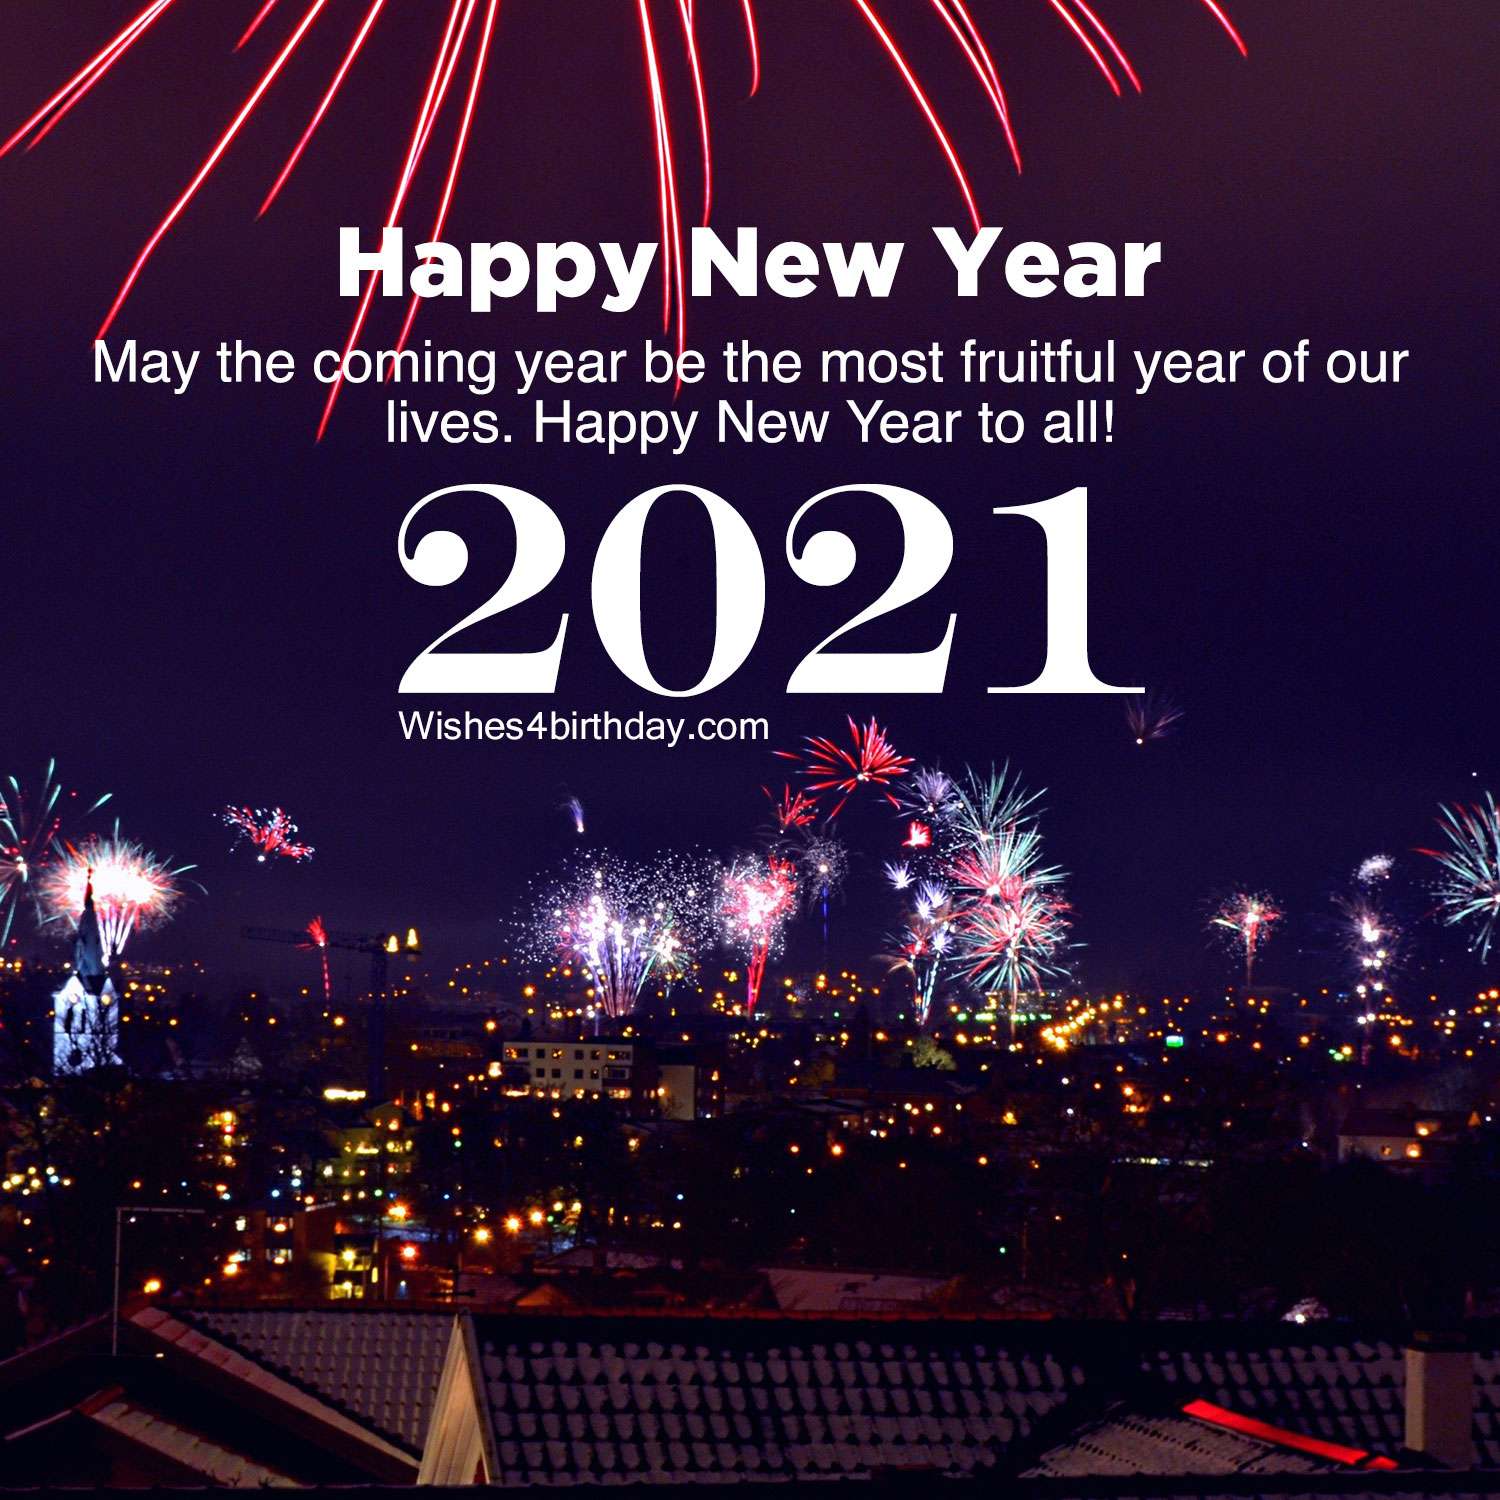 Happy New Year Images For An Amazing 2021 Happy Birthday Wishes Memes Sms Greeting Ecard Images